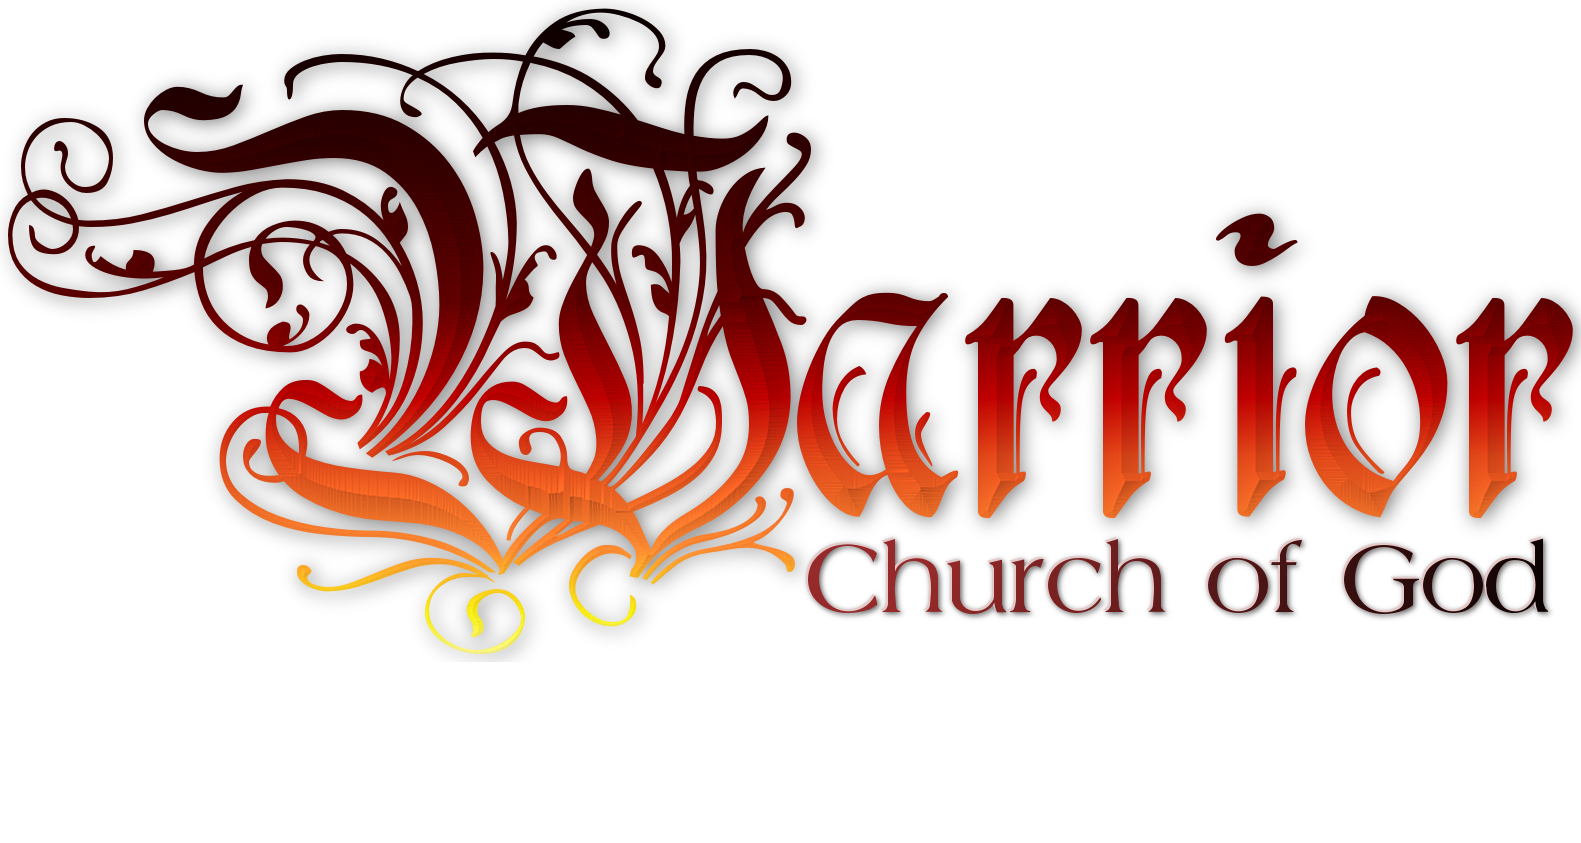 Warrior Church of God